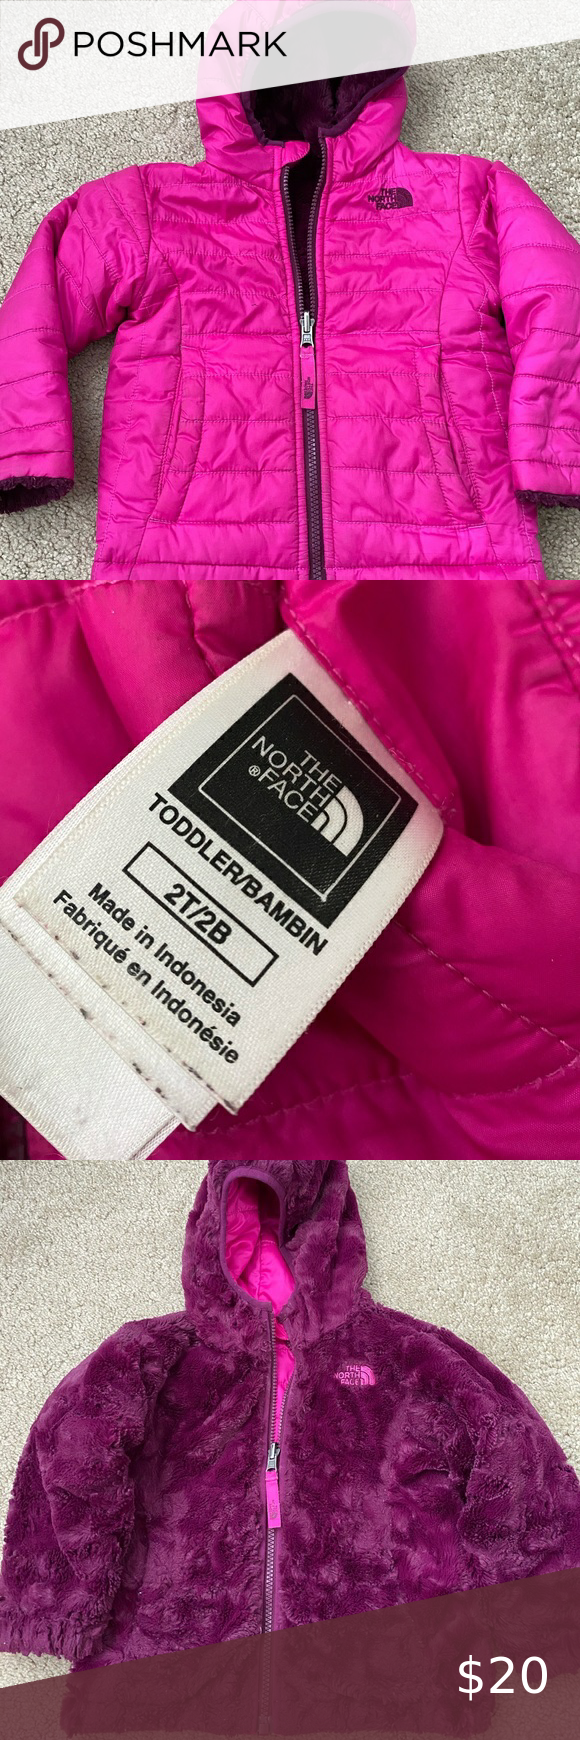 The North Face Toddler 2t Jacket The North Face North Face Jacket Jackets [ 1740 x 580 Pixel ]